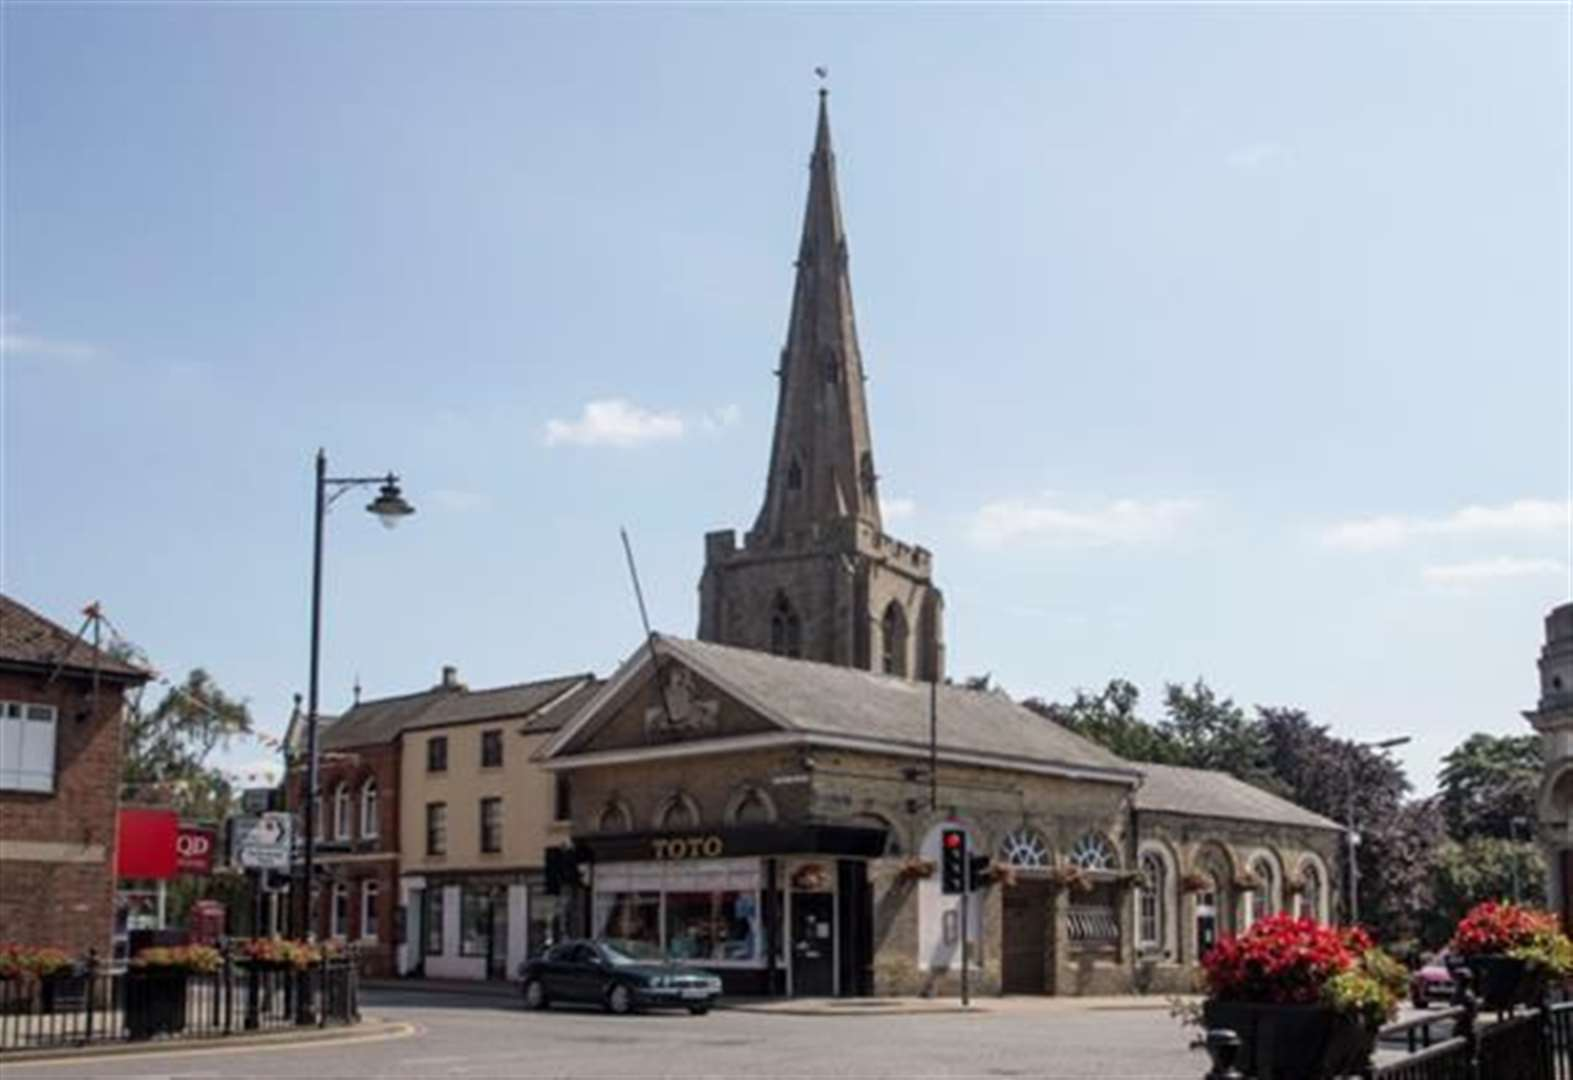 Work begins to regenerate town centres